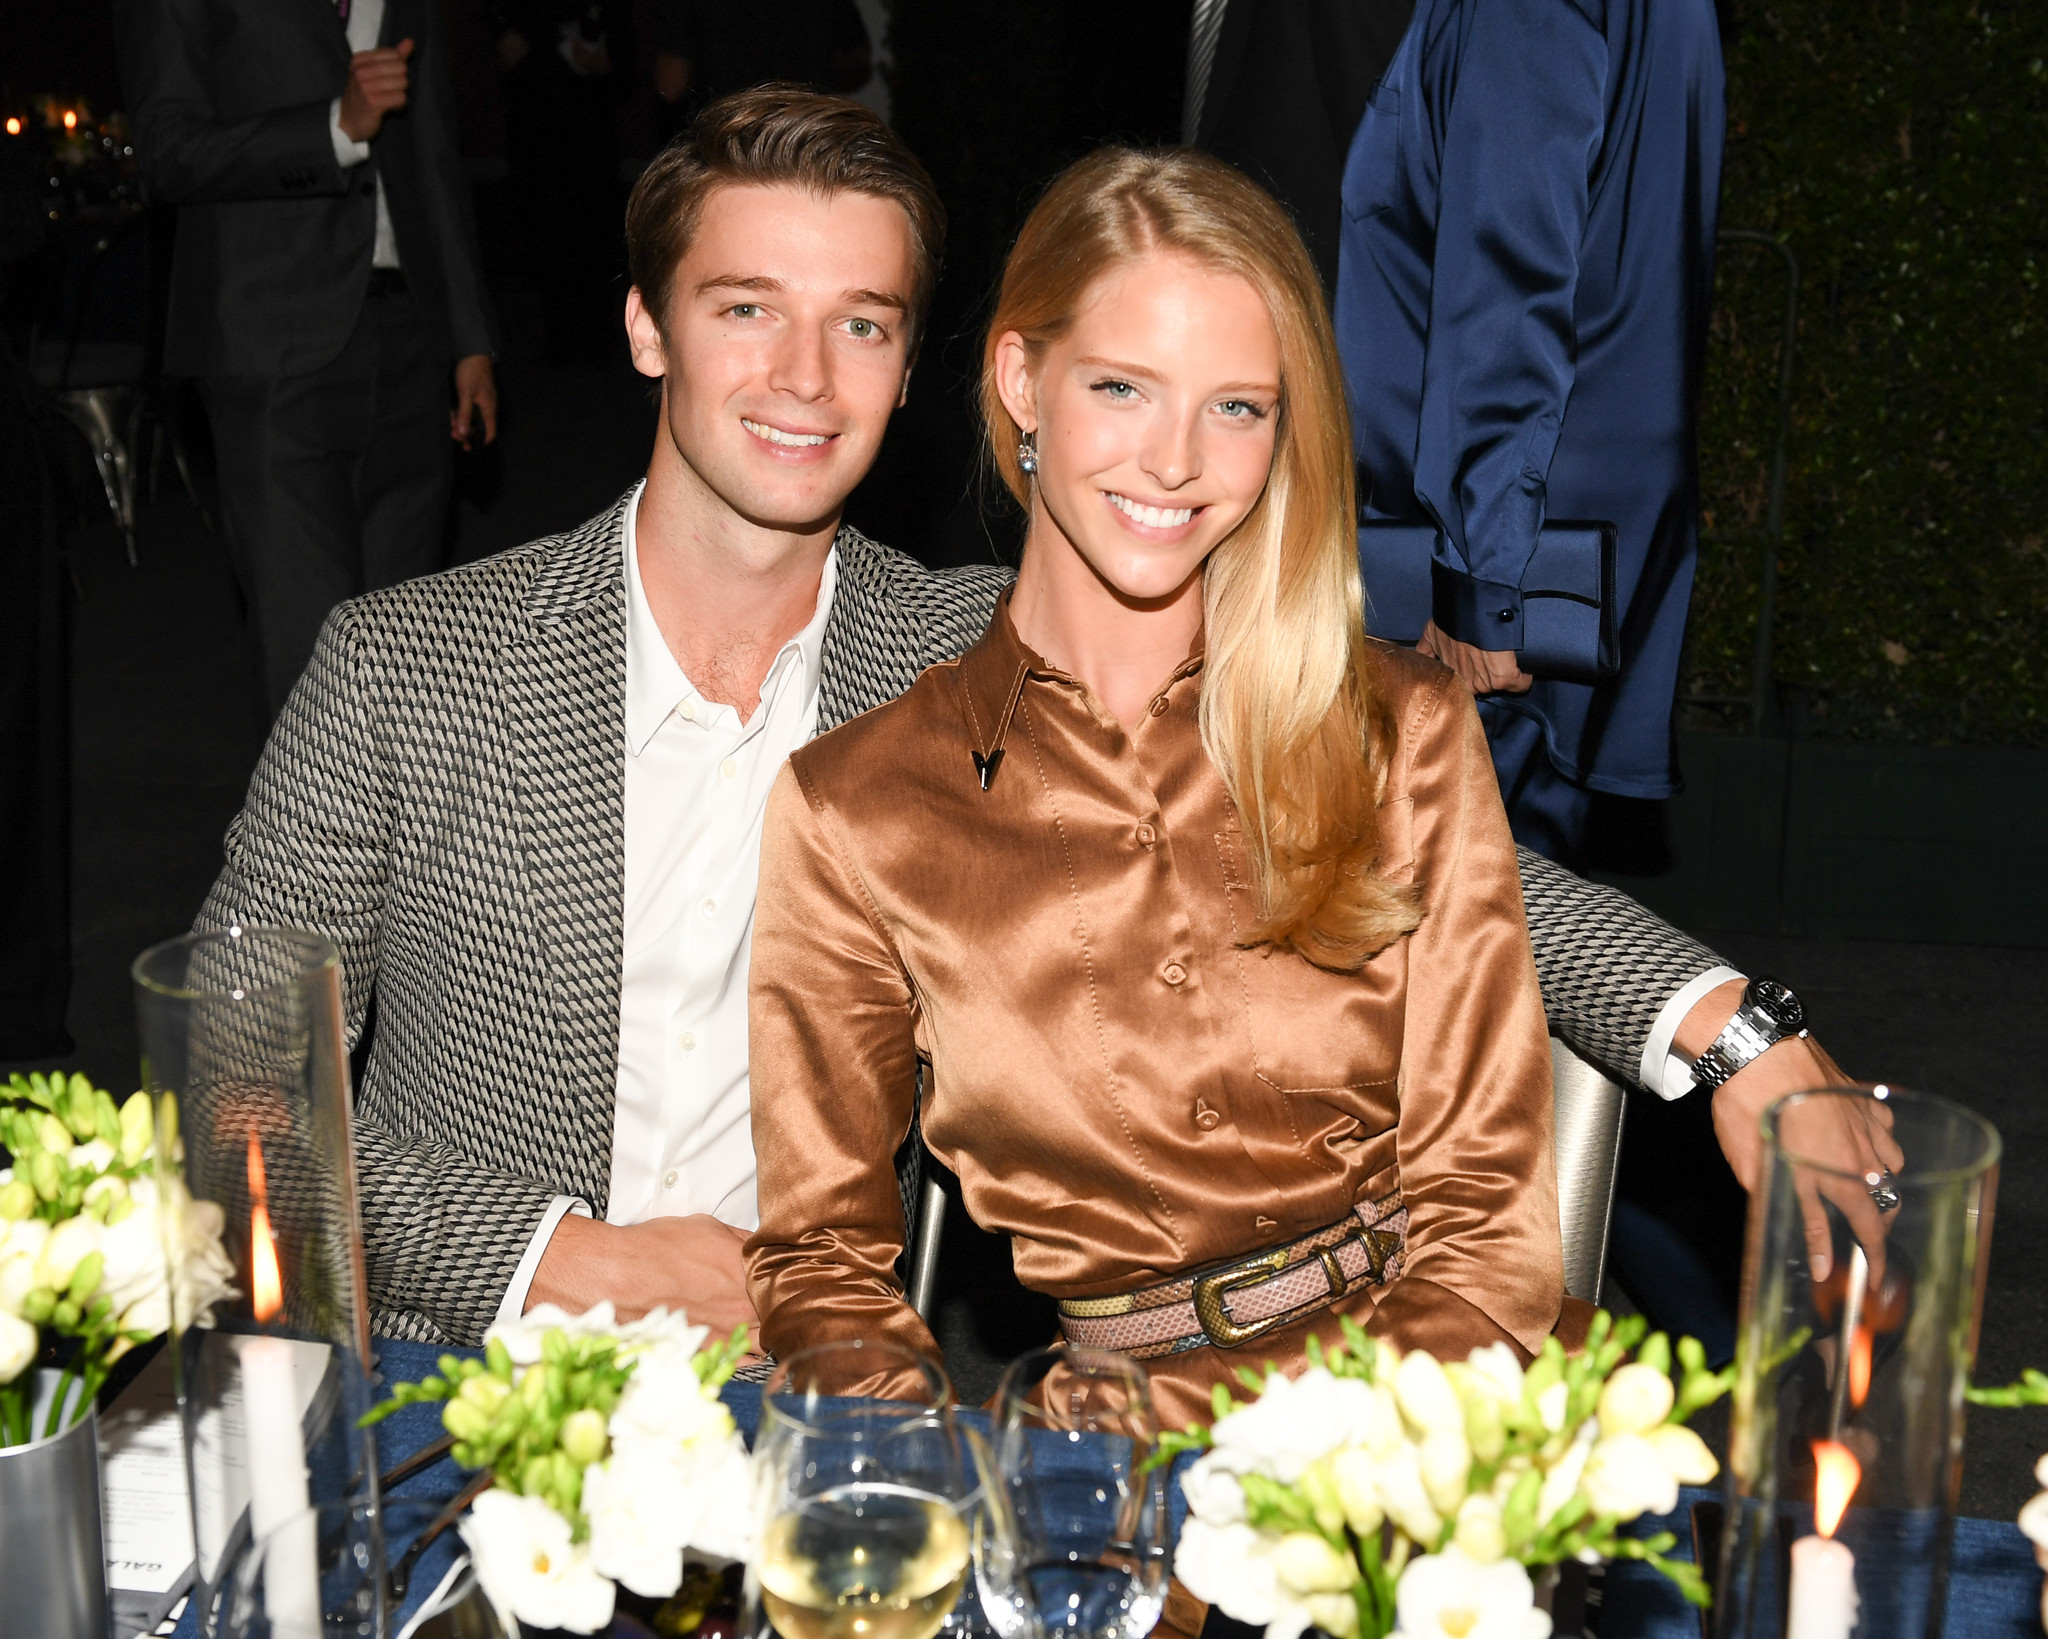 Patrick Schwarzenegger and Abby Champion were part of the star-studded crowd at the Hammer Museum gala.